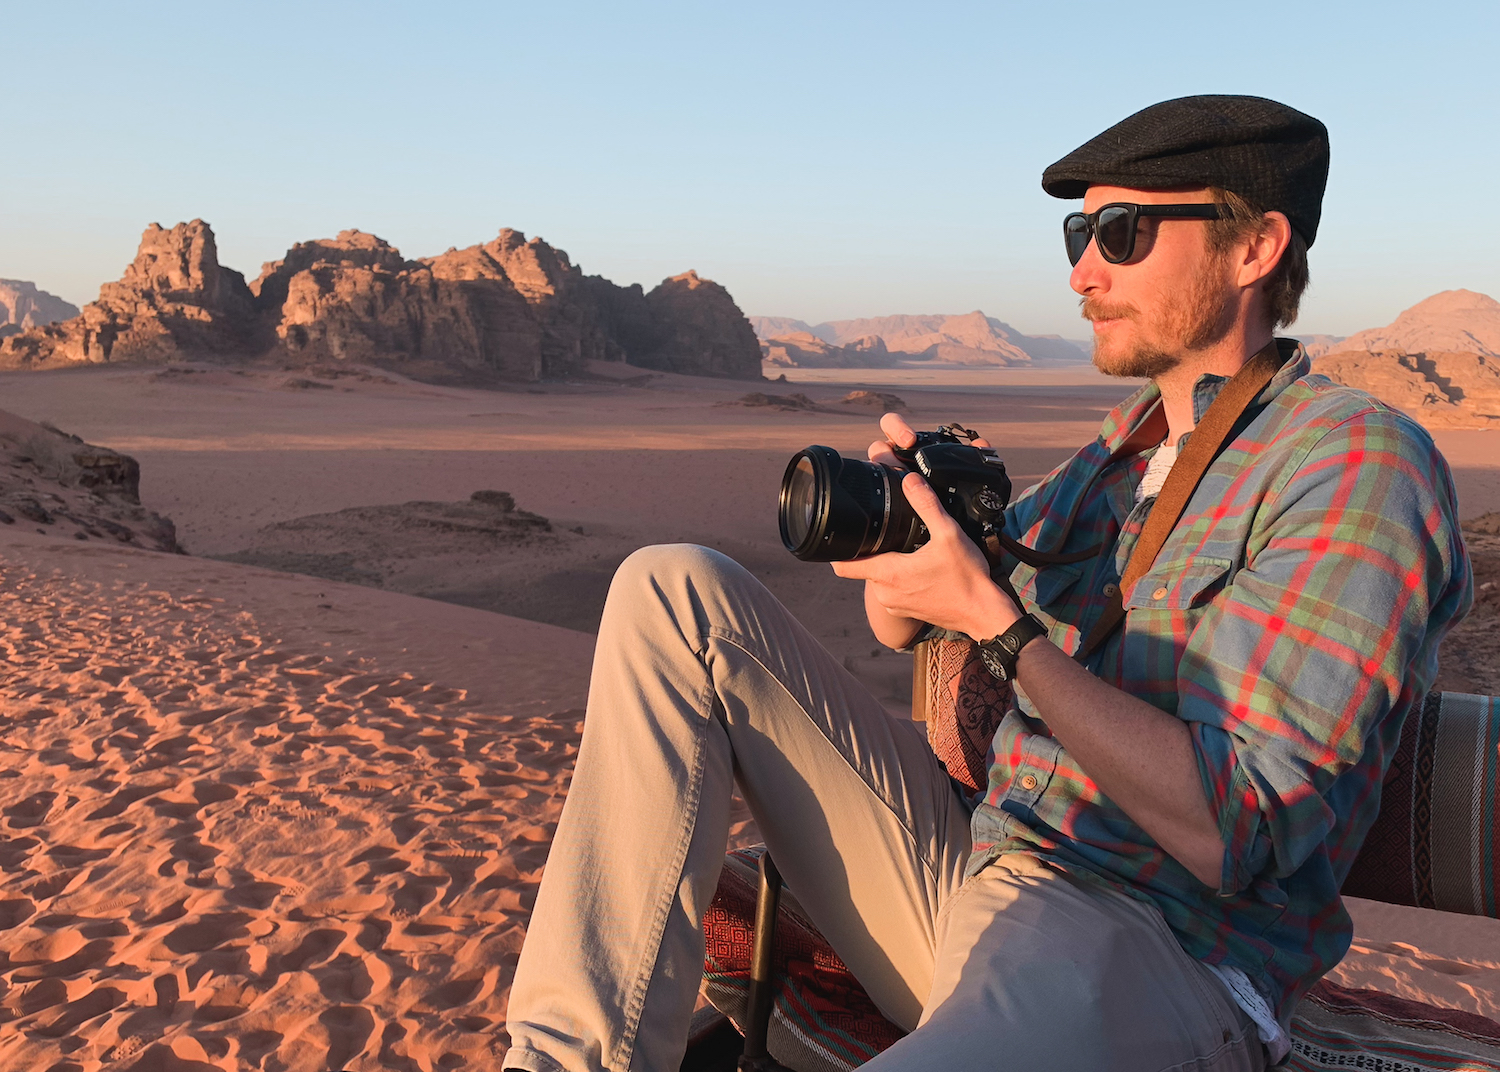 Things to do in Jordan - by travel blogger and photographer Ben Holbrook from DriftwoodJournals.com